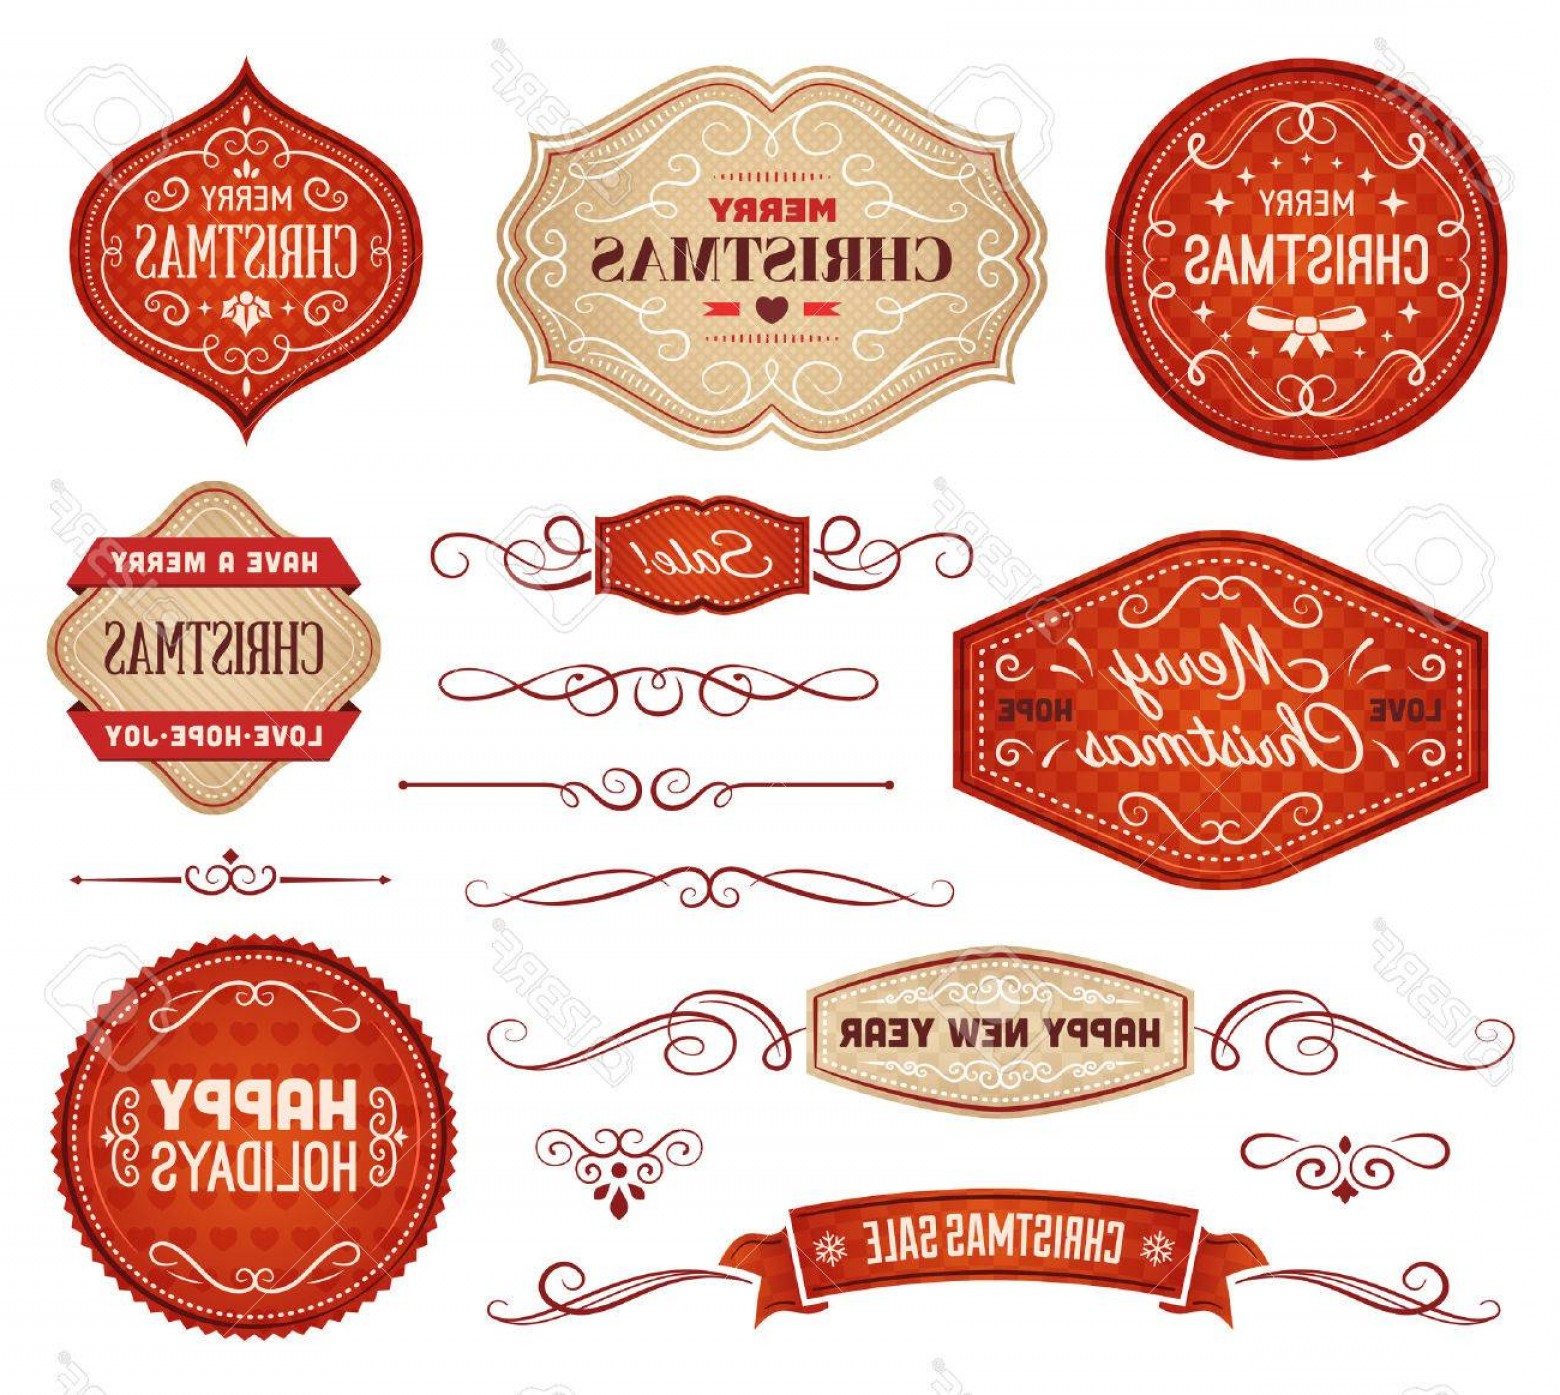 Vector Lables: Photostock Vector Collection Of Red And Beige Christmas Vector Labels And Ornaments